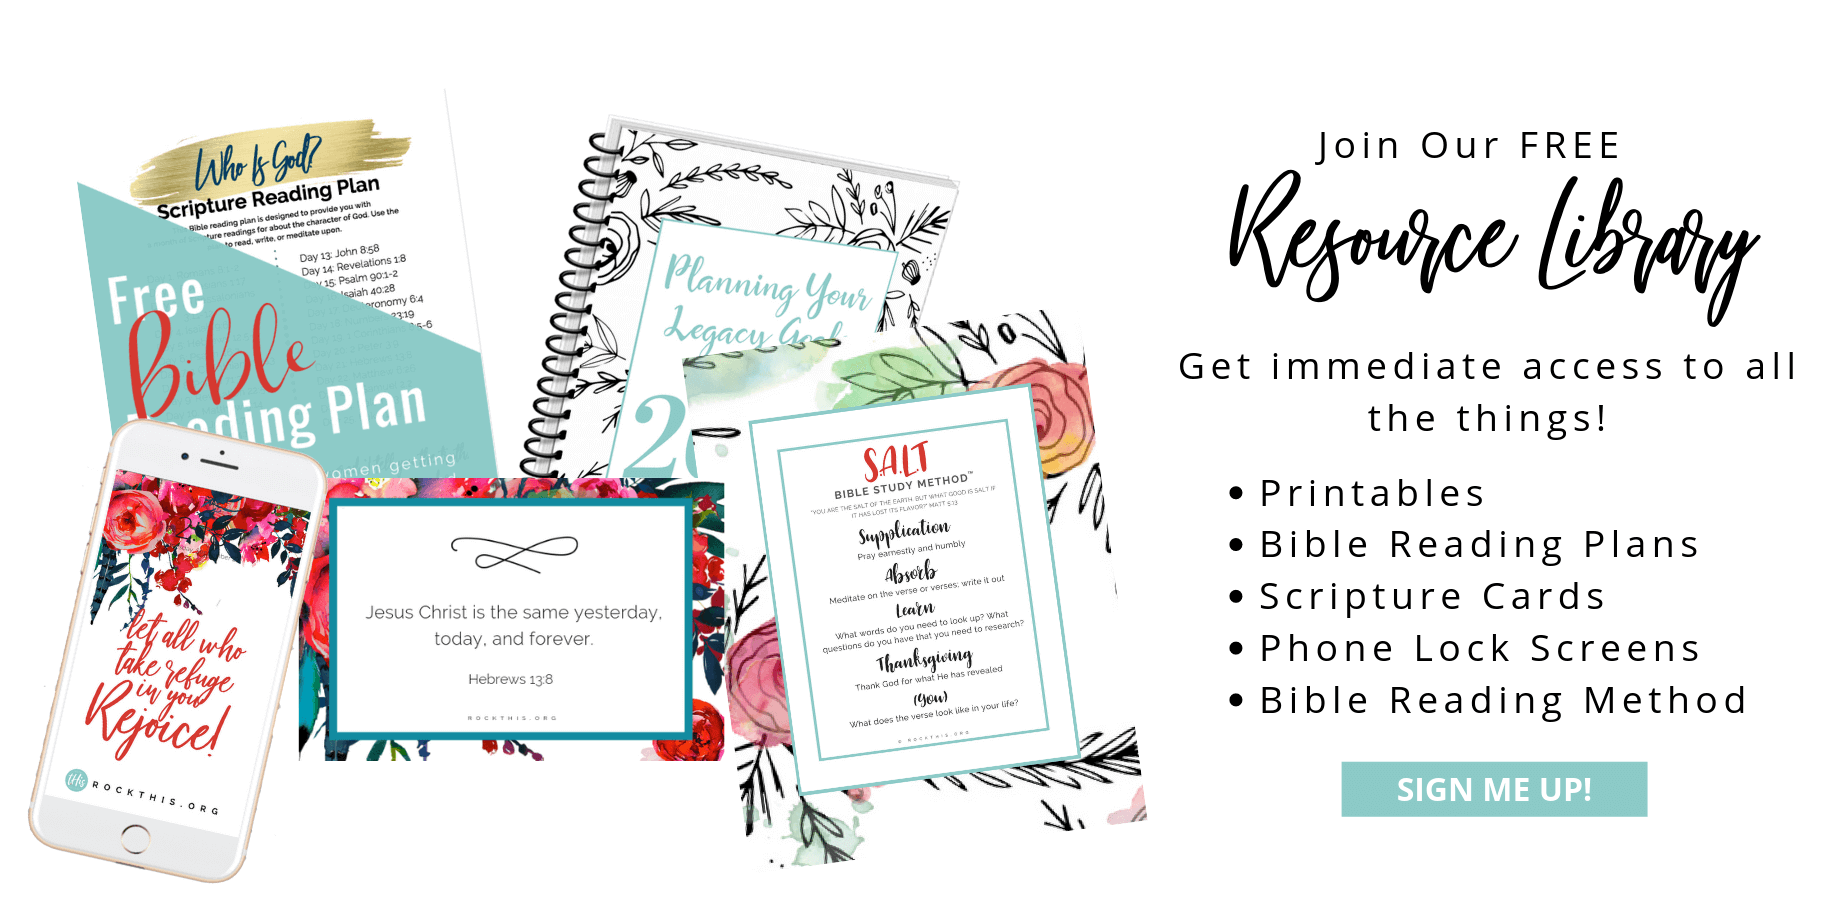 Rock This Resource Library | Get free Bible reading plans, legacy goal setting workbook, Scripture printables, and more. #rockthisrevival #christian #prayer #Bible #pray #Jesus